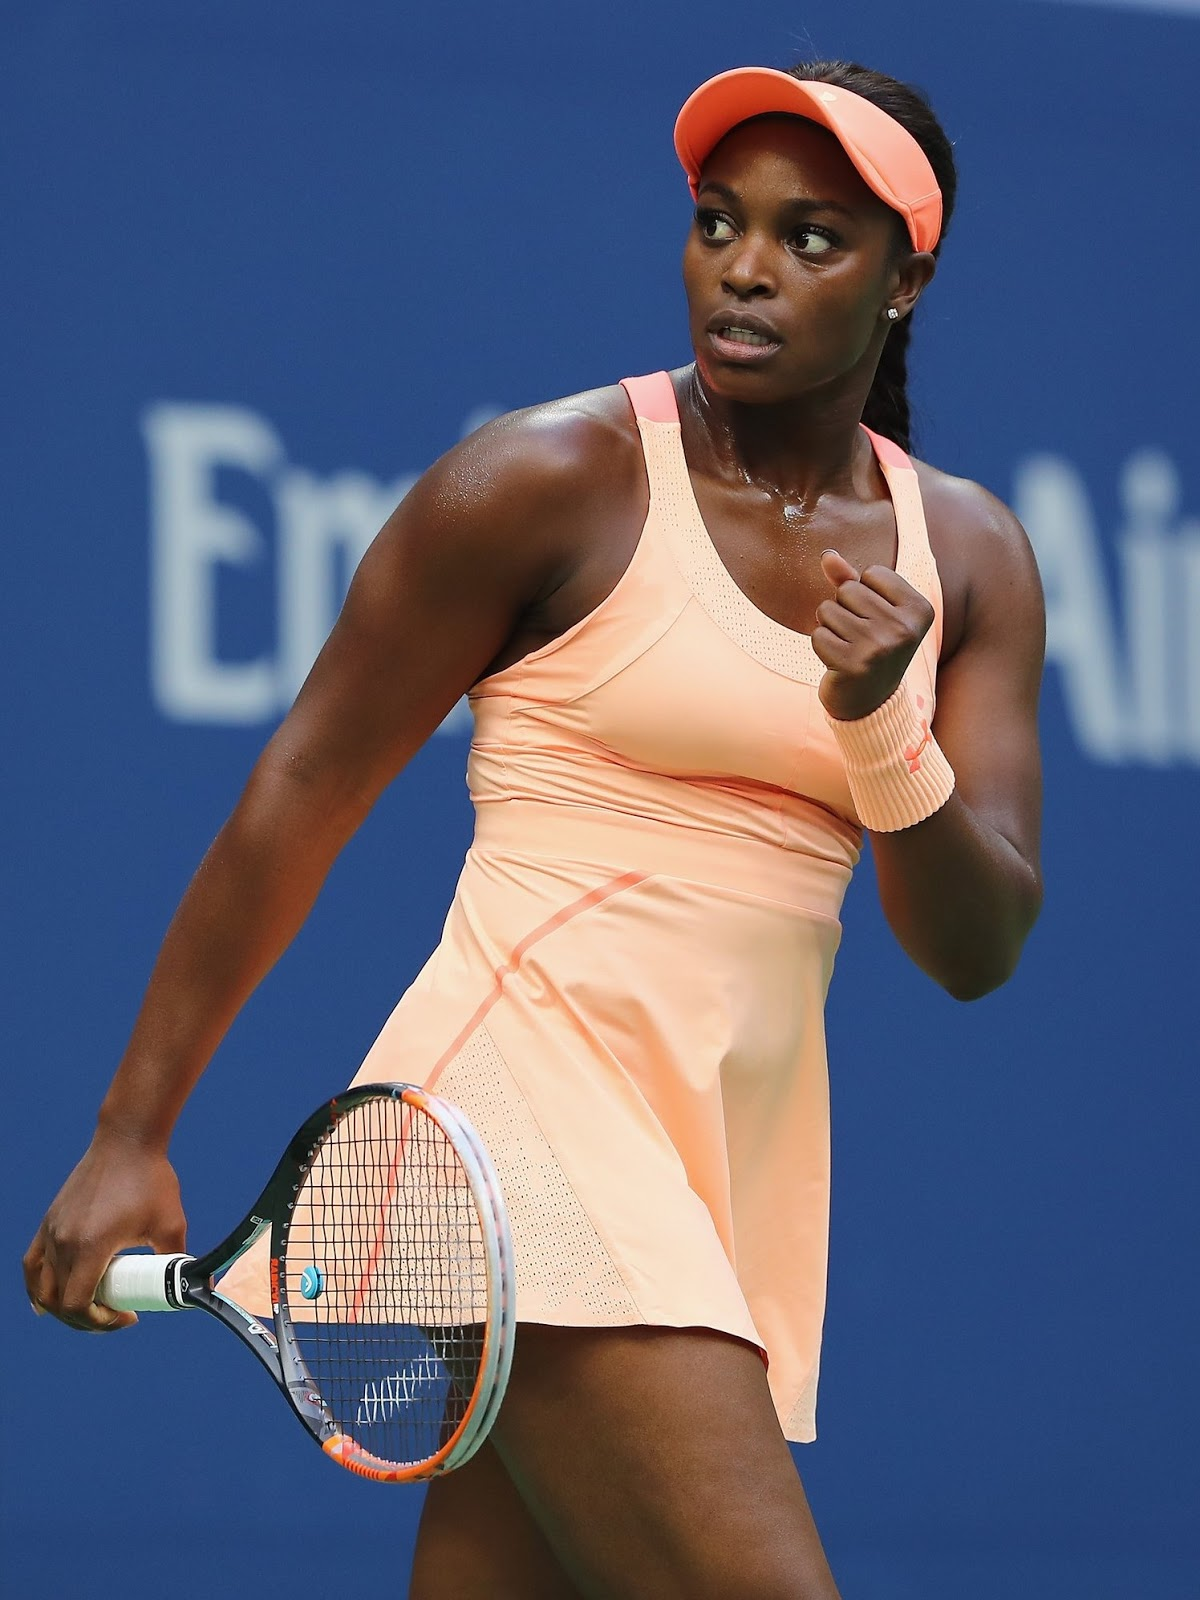 WTA hotties: 2017 Hot-100: #6 Sloane Stephens (@SloaneStephens)